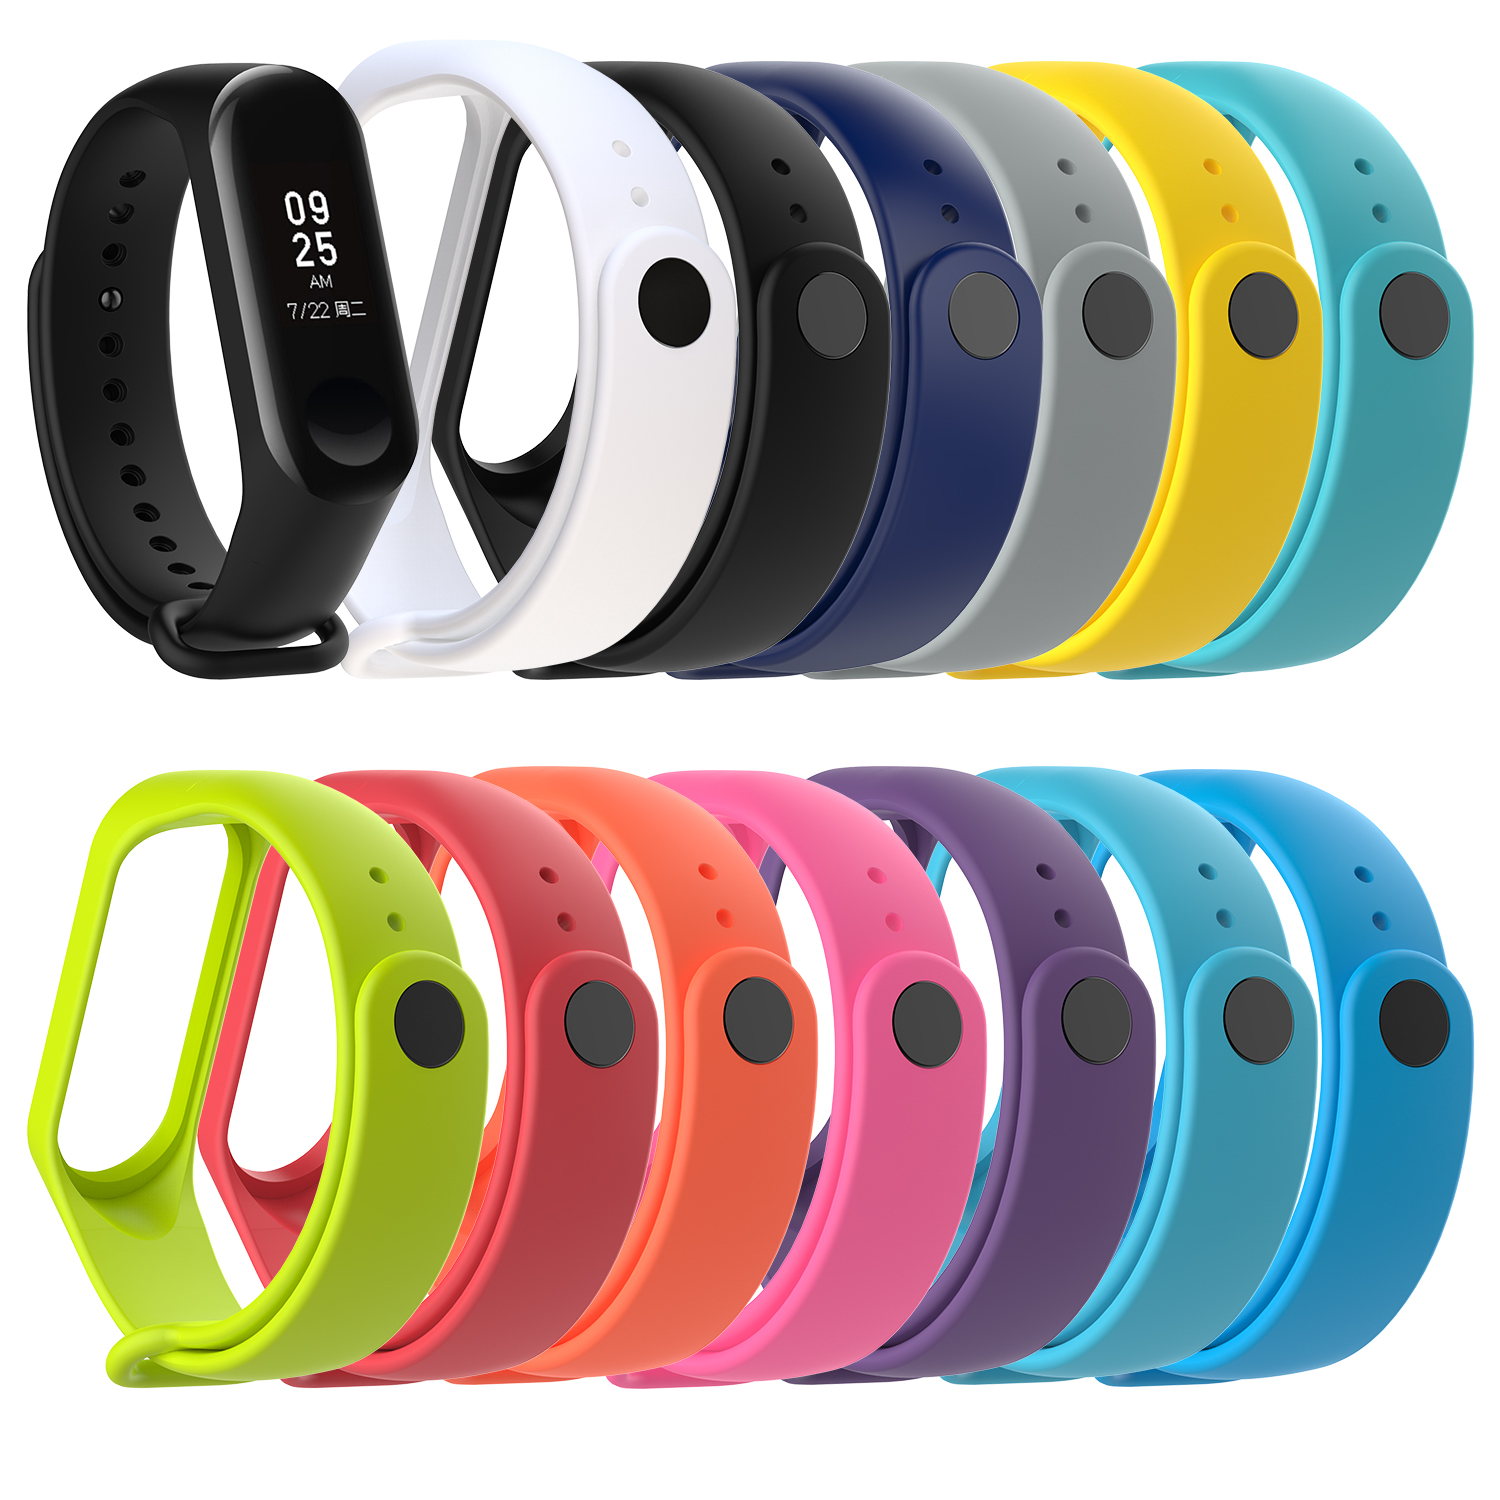 Silicone Strap For Xiaomi Mi Band 3 4 Colorful Straps For Xiaomi Miband 4 Smart Bracelet Replacement Strap For Mi Band 4 xiaomi mi band 4